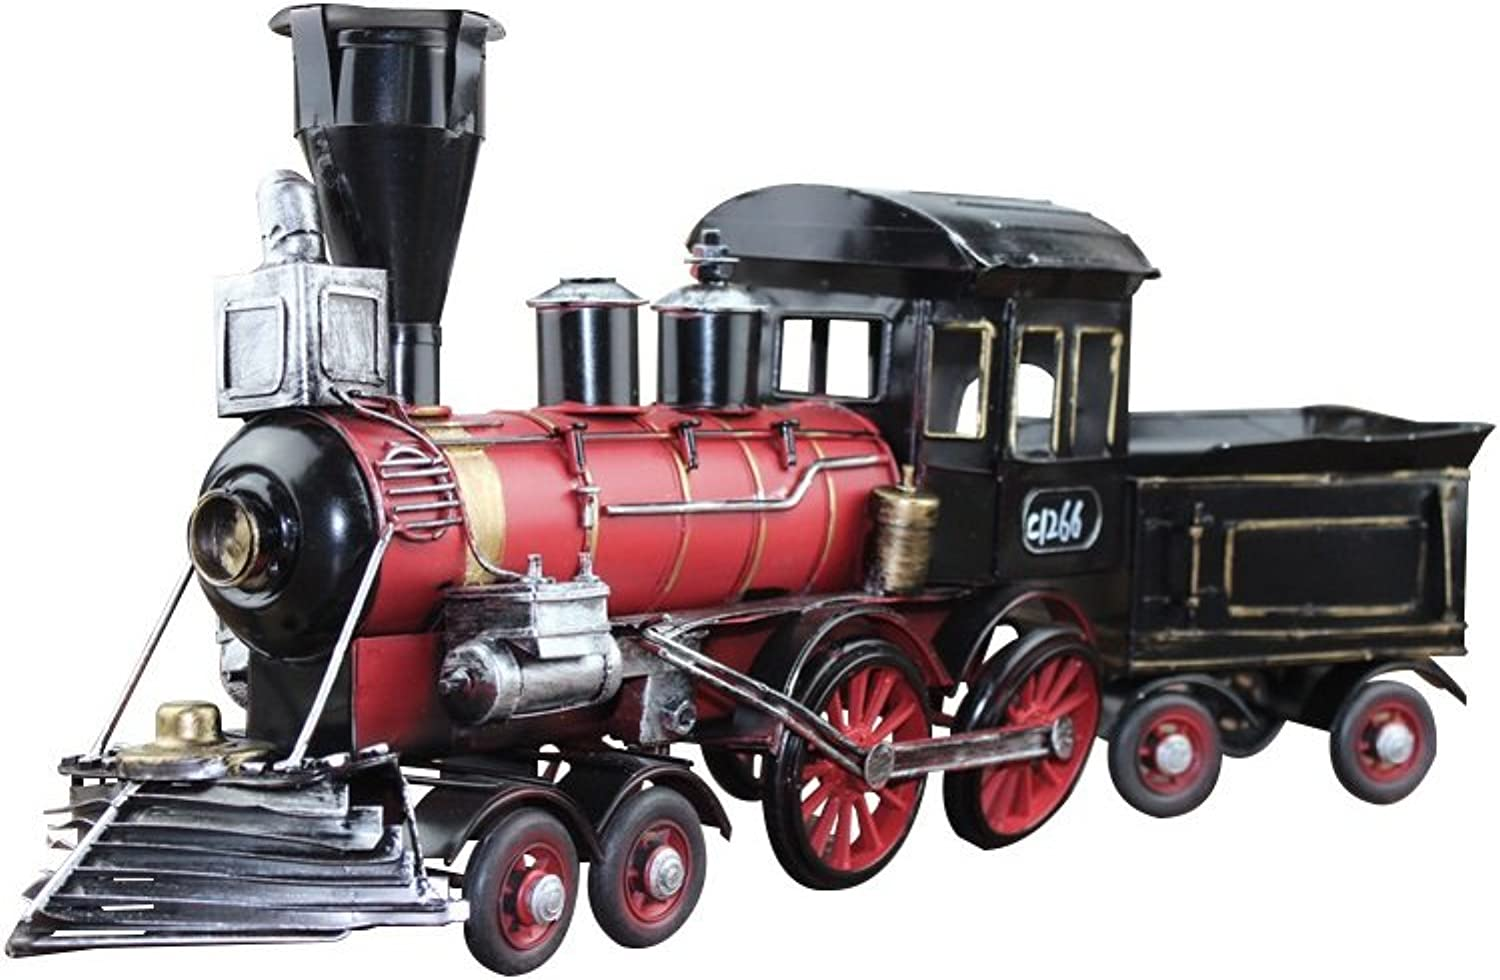 FECTY Antique Crafts Iron Red Locomotive Extra Large European Ornaments Crafts Home Furnishings Gifts Home Decoration